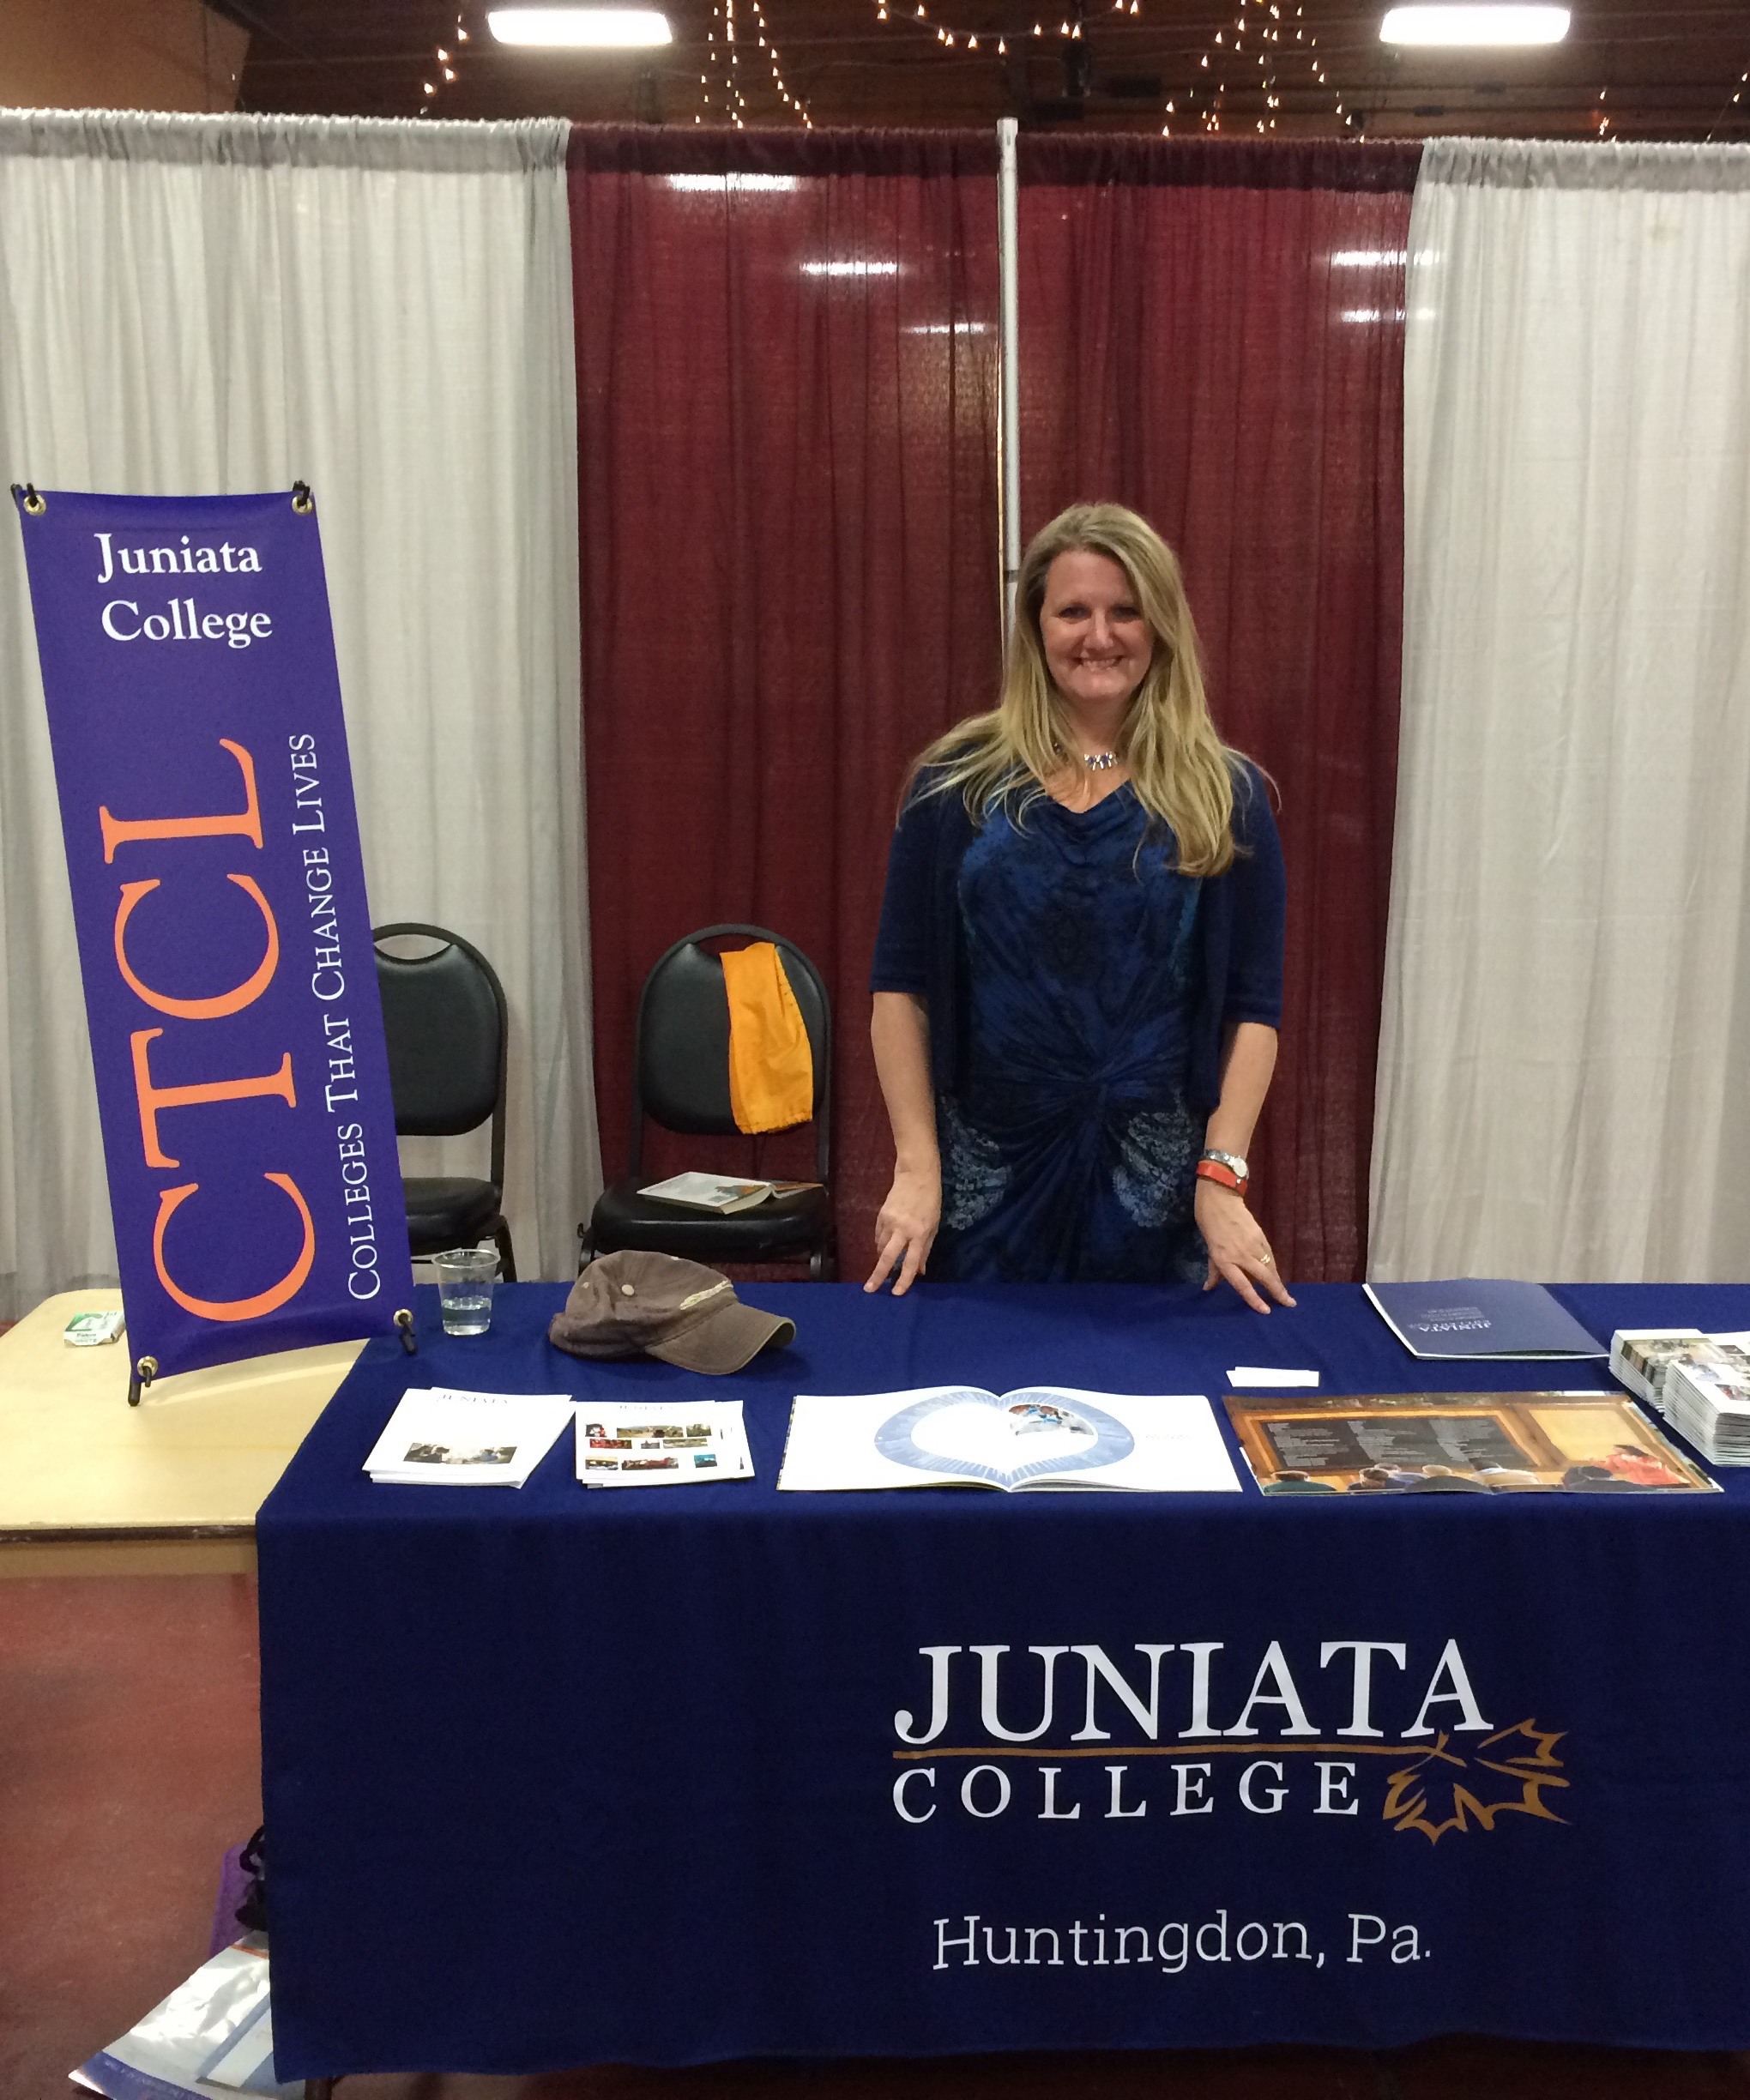 Jeanette Zalder representing Juniata College at a College Fair